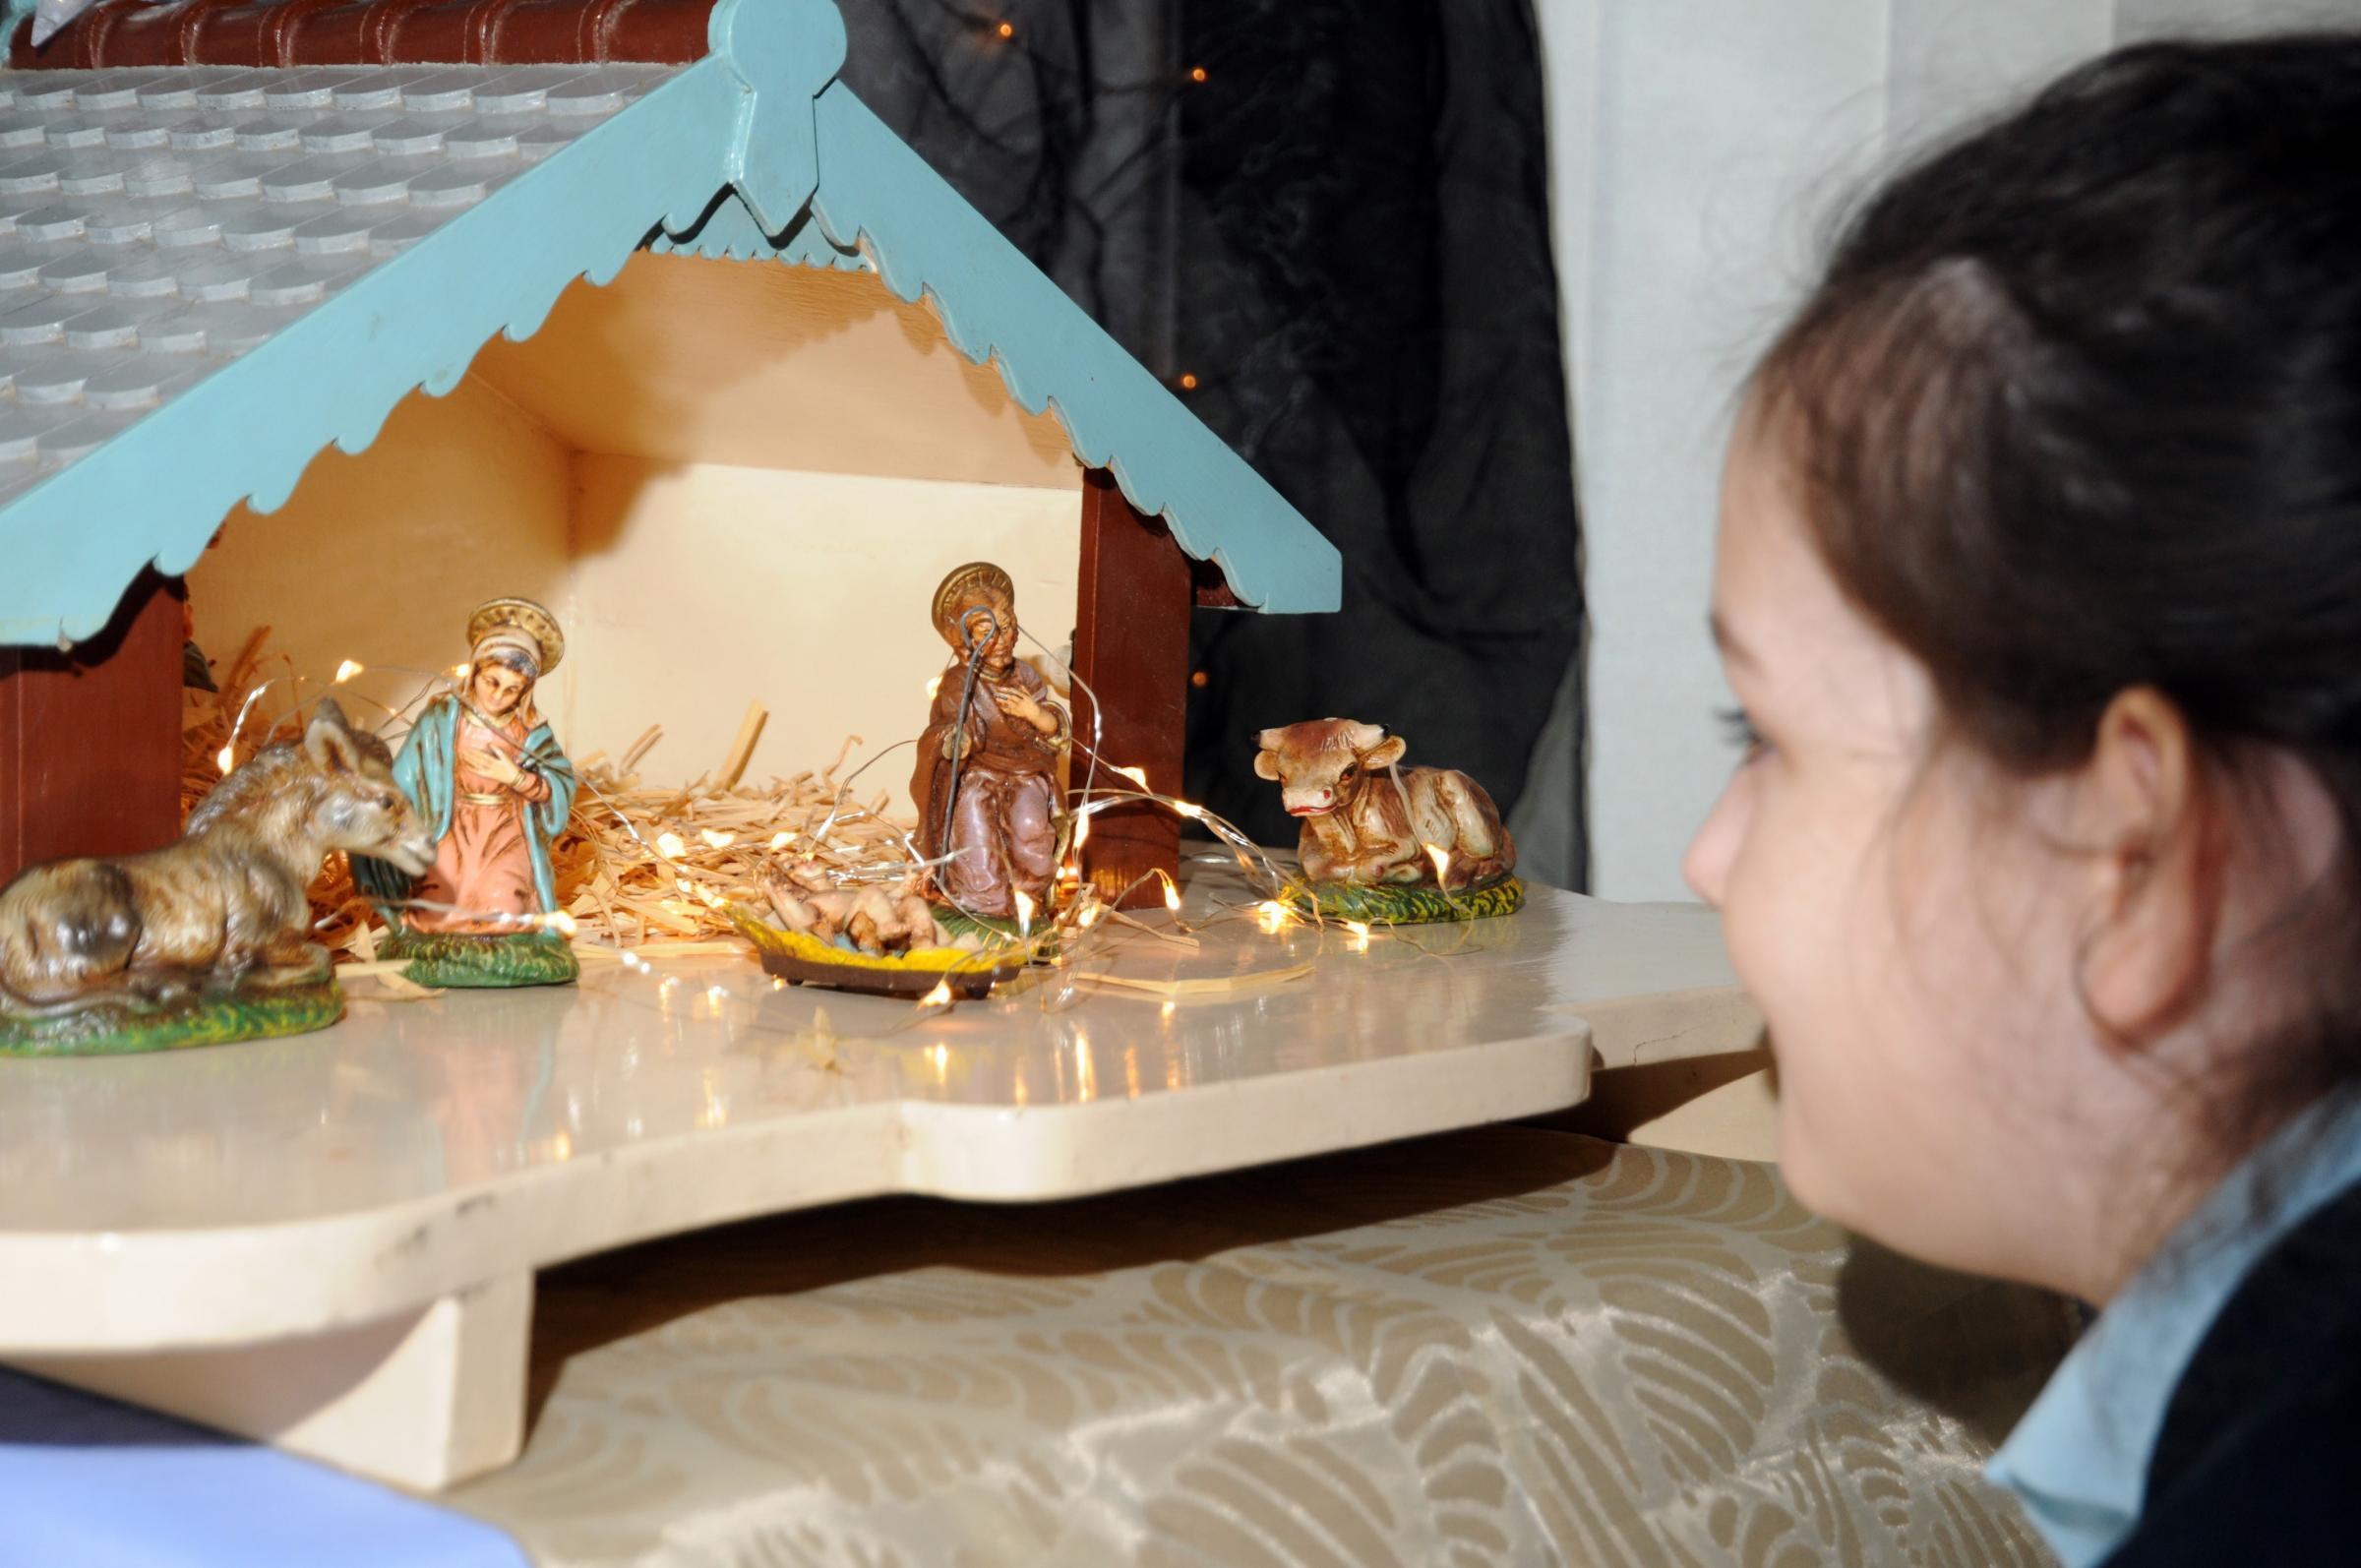 A solicitor has explained the photographic minefield that is the school nativity play